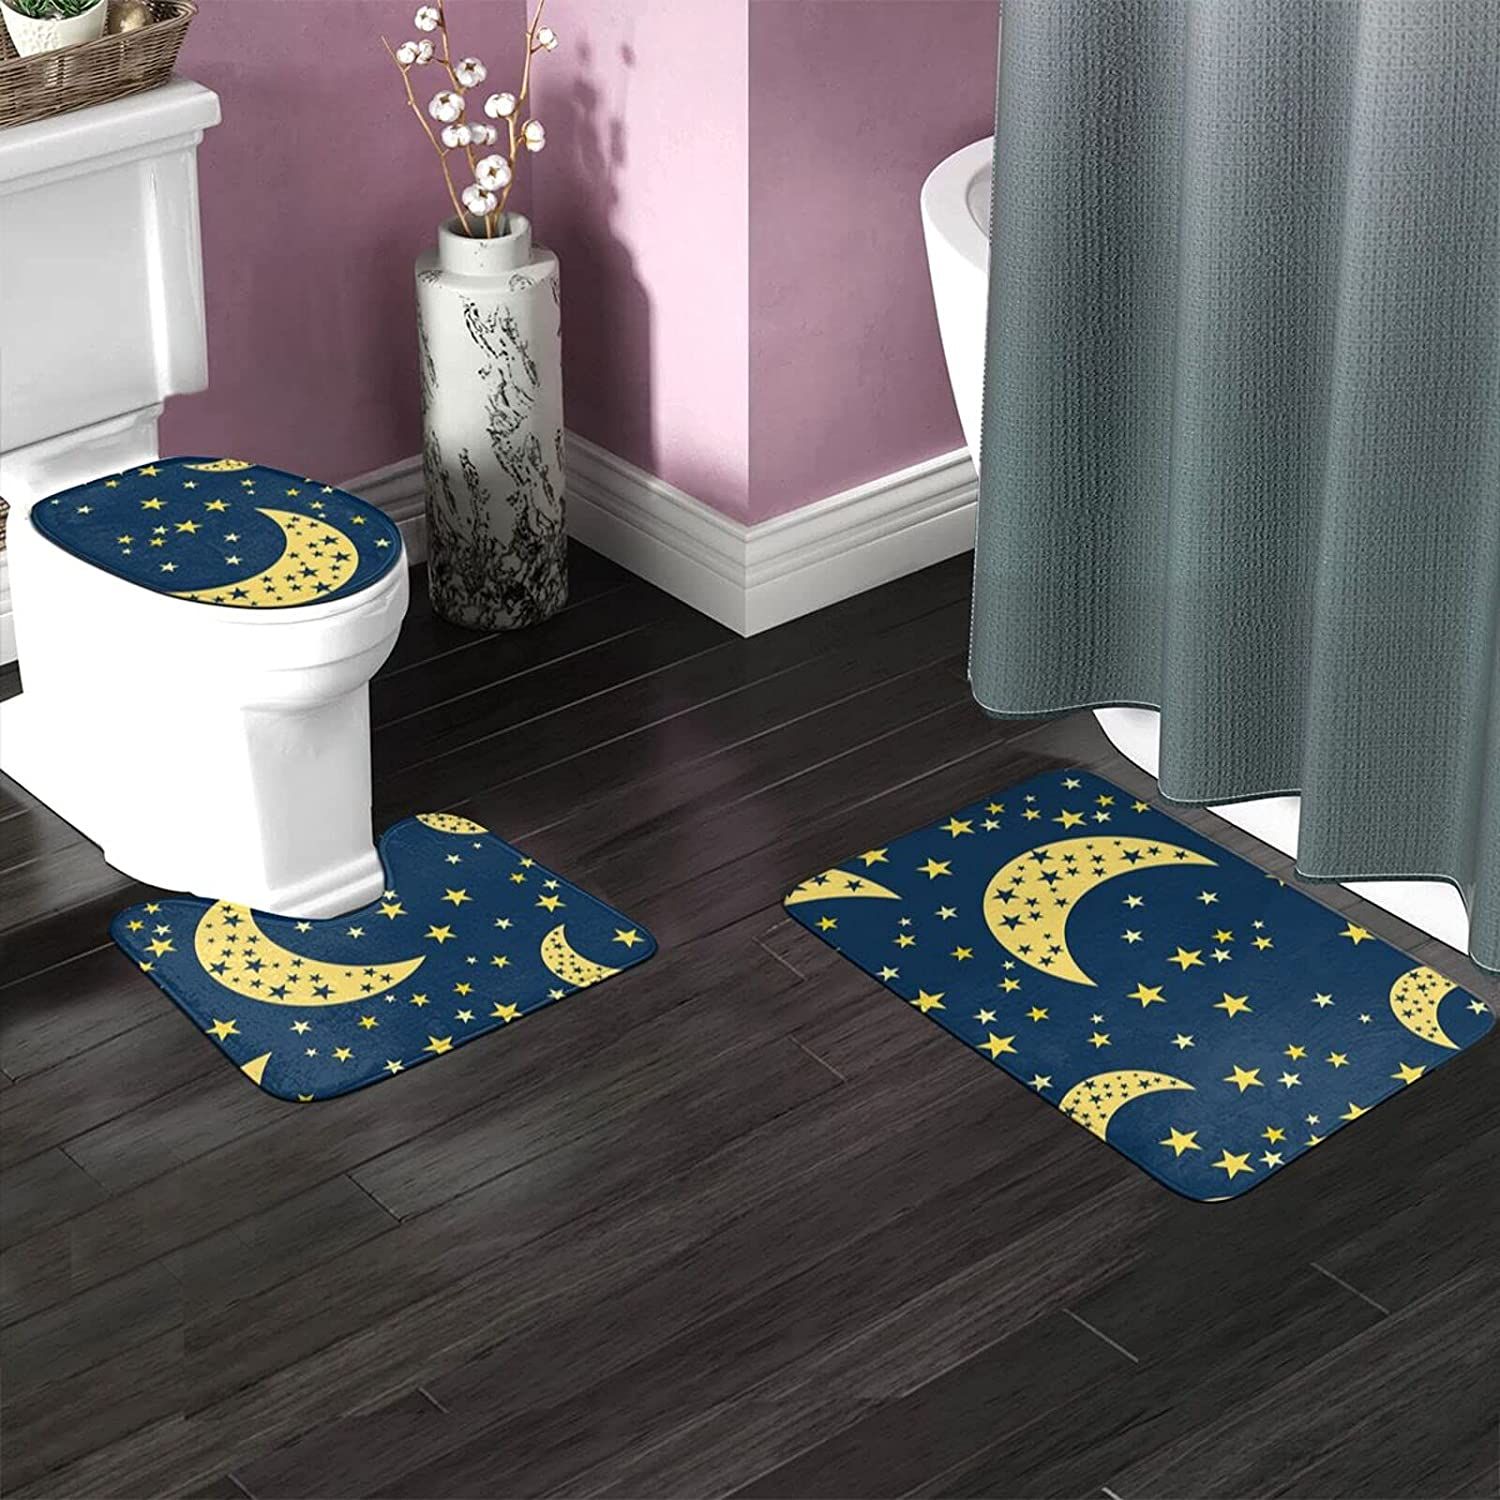 Starry 2021new shipping free shipping Universe Space Printbathroom Carpet Accessories Bathroom Spring new work one after another